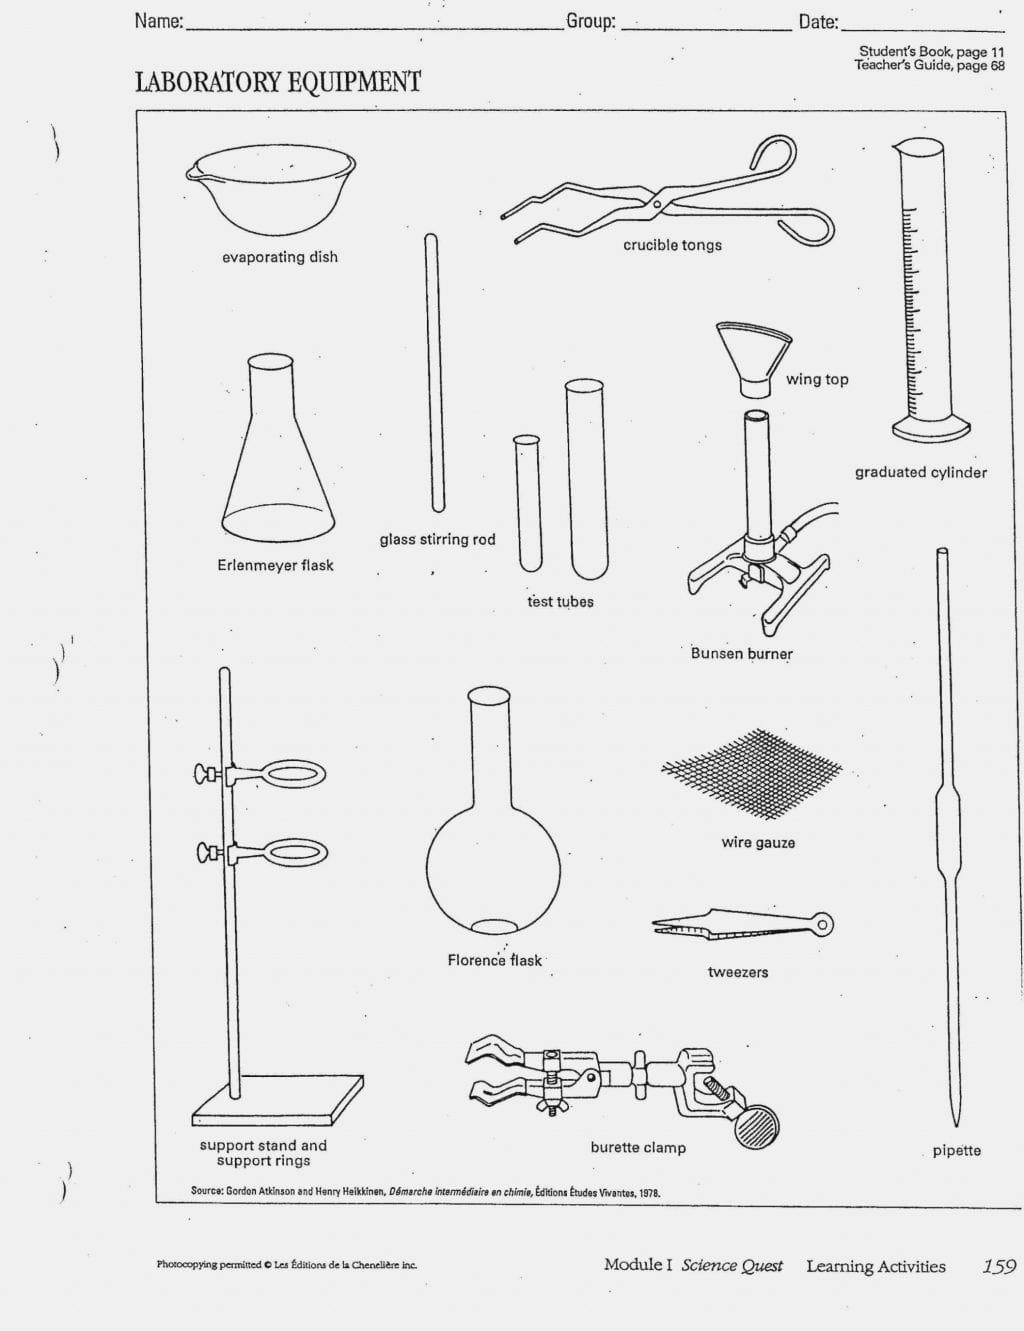 Middle School Lab Equipment Worksheet